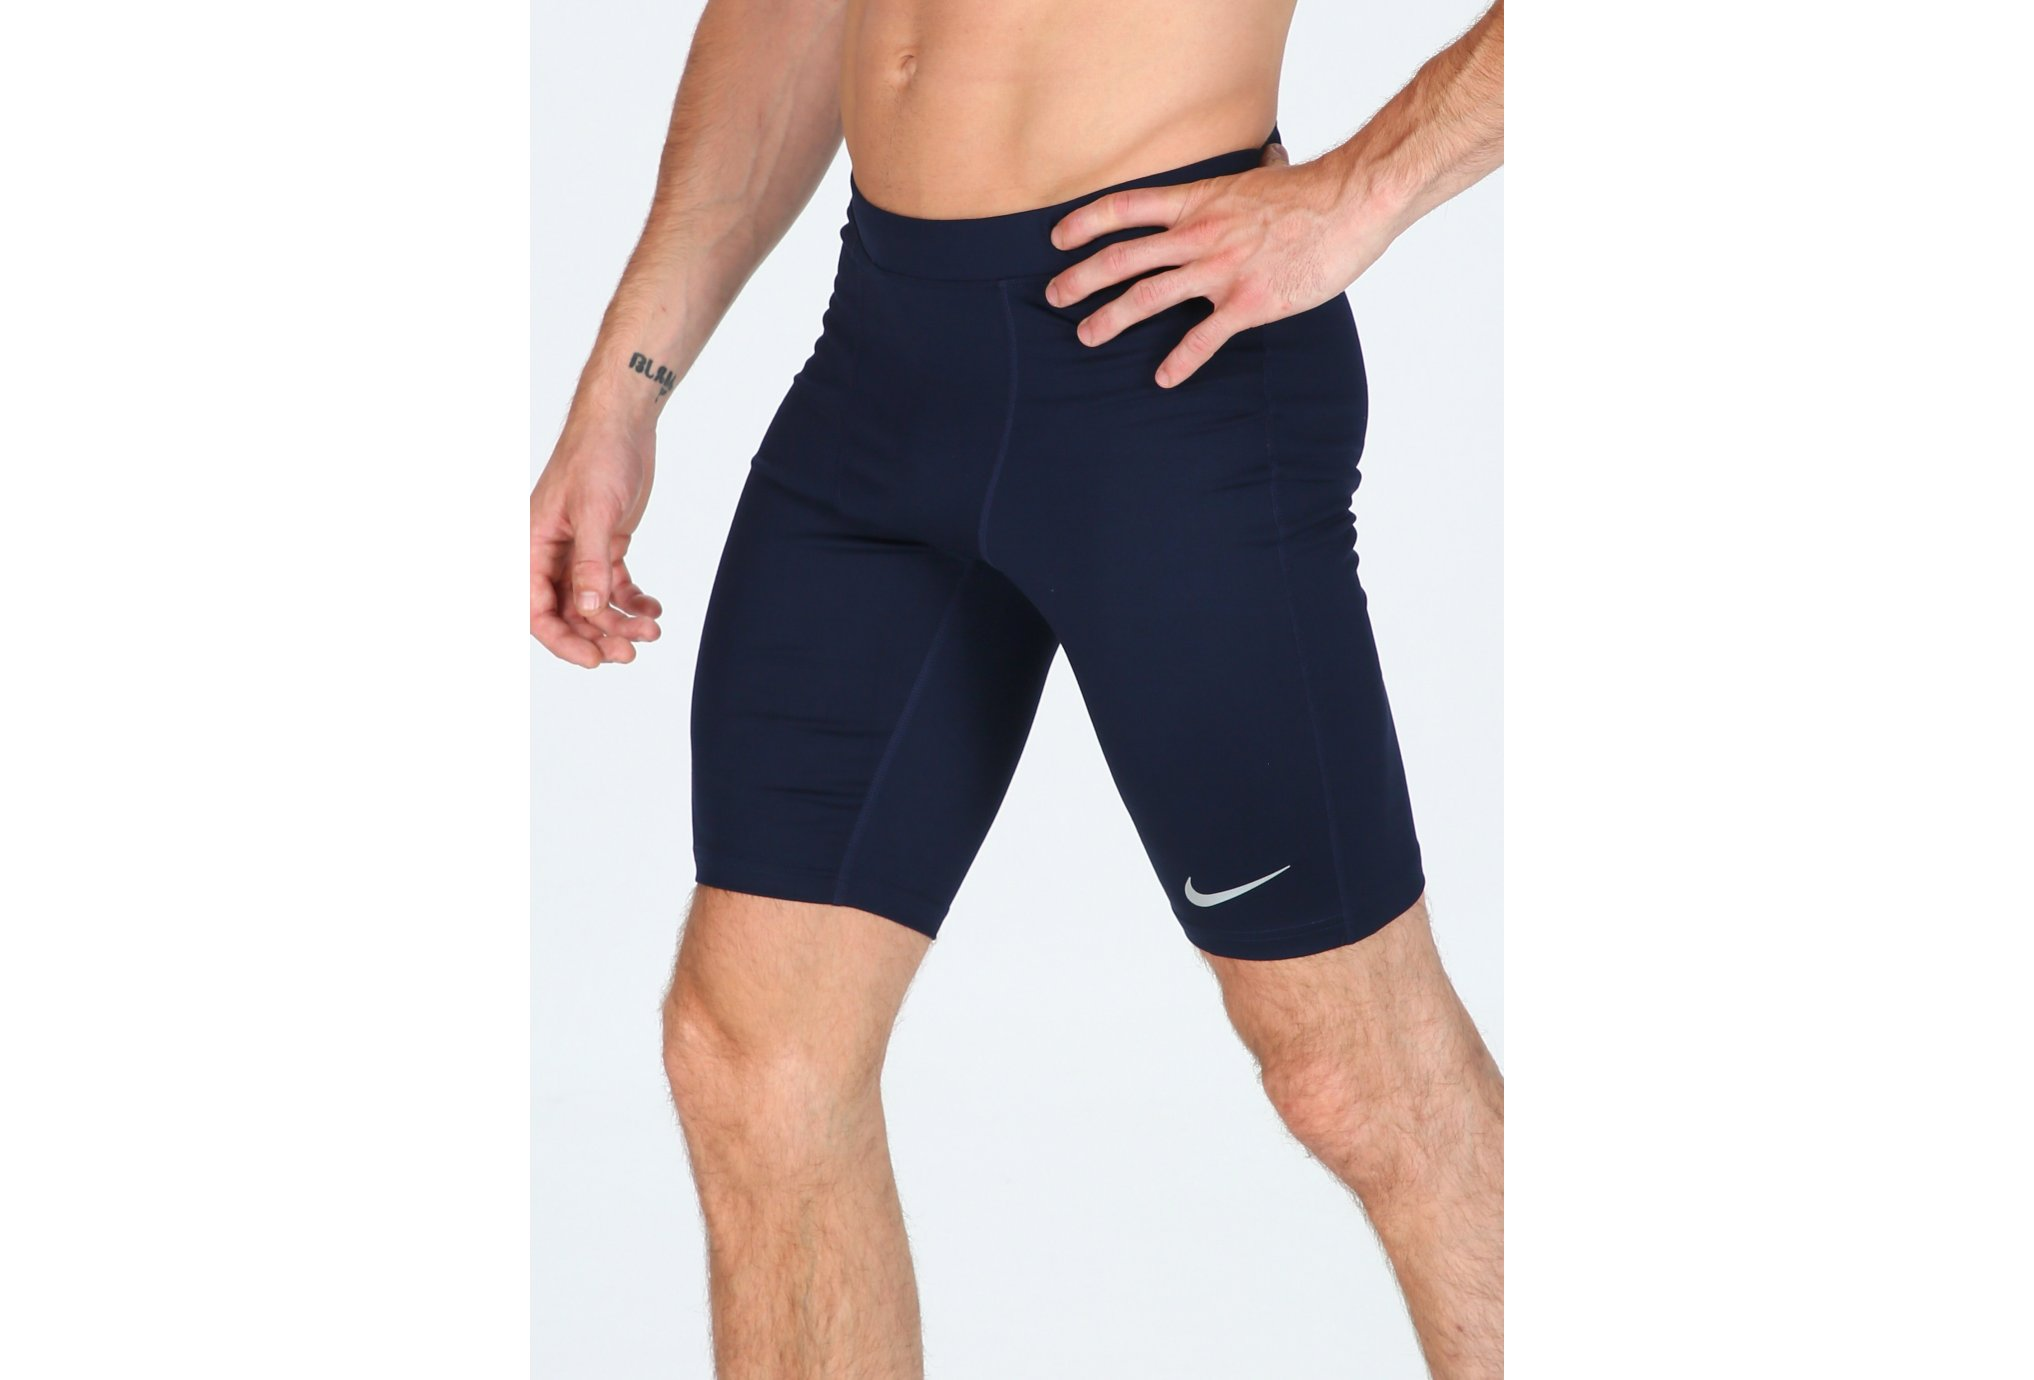 Nike Mallas cortas Power vêtement running homme